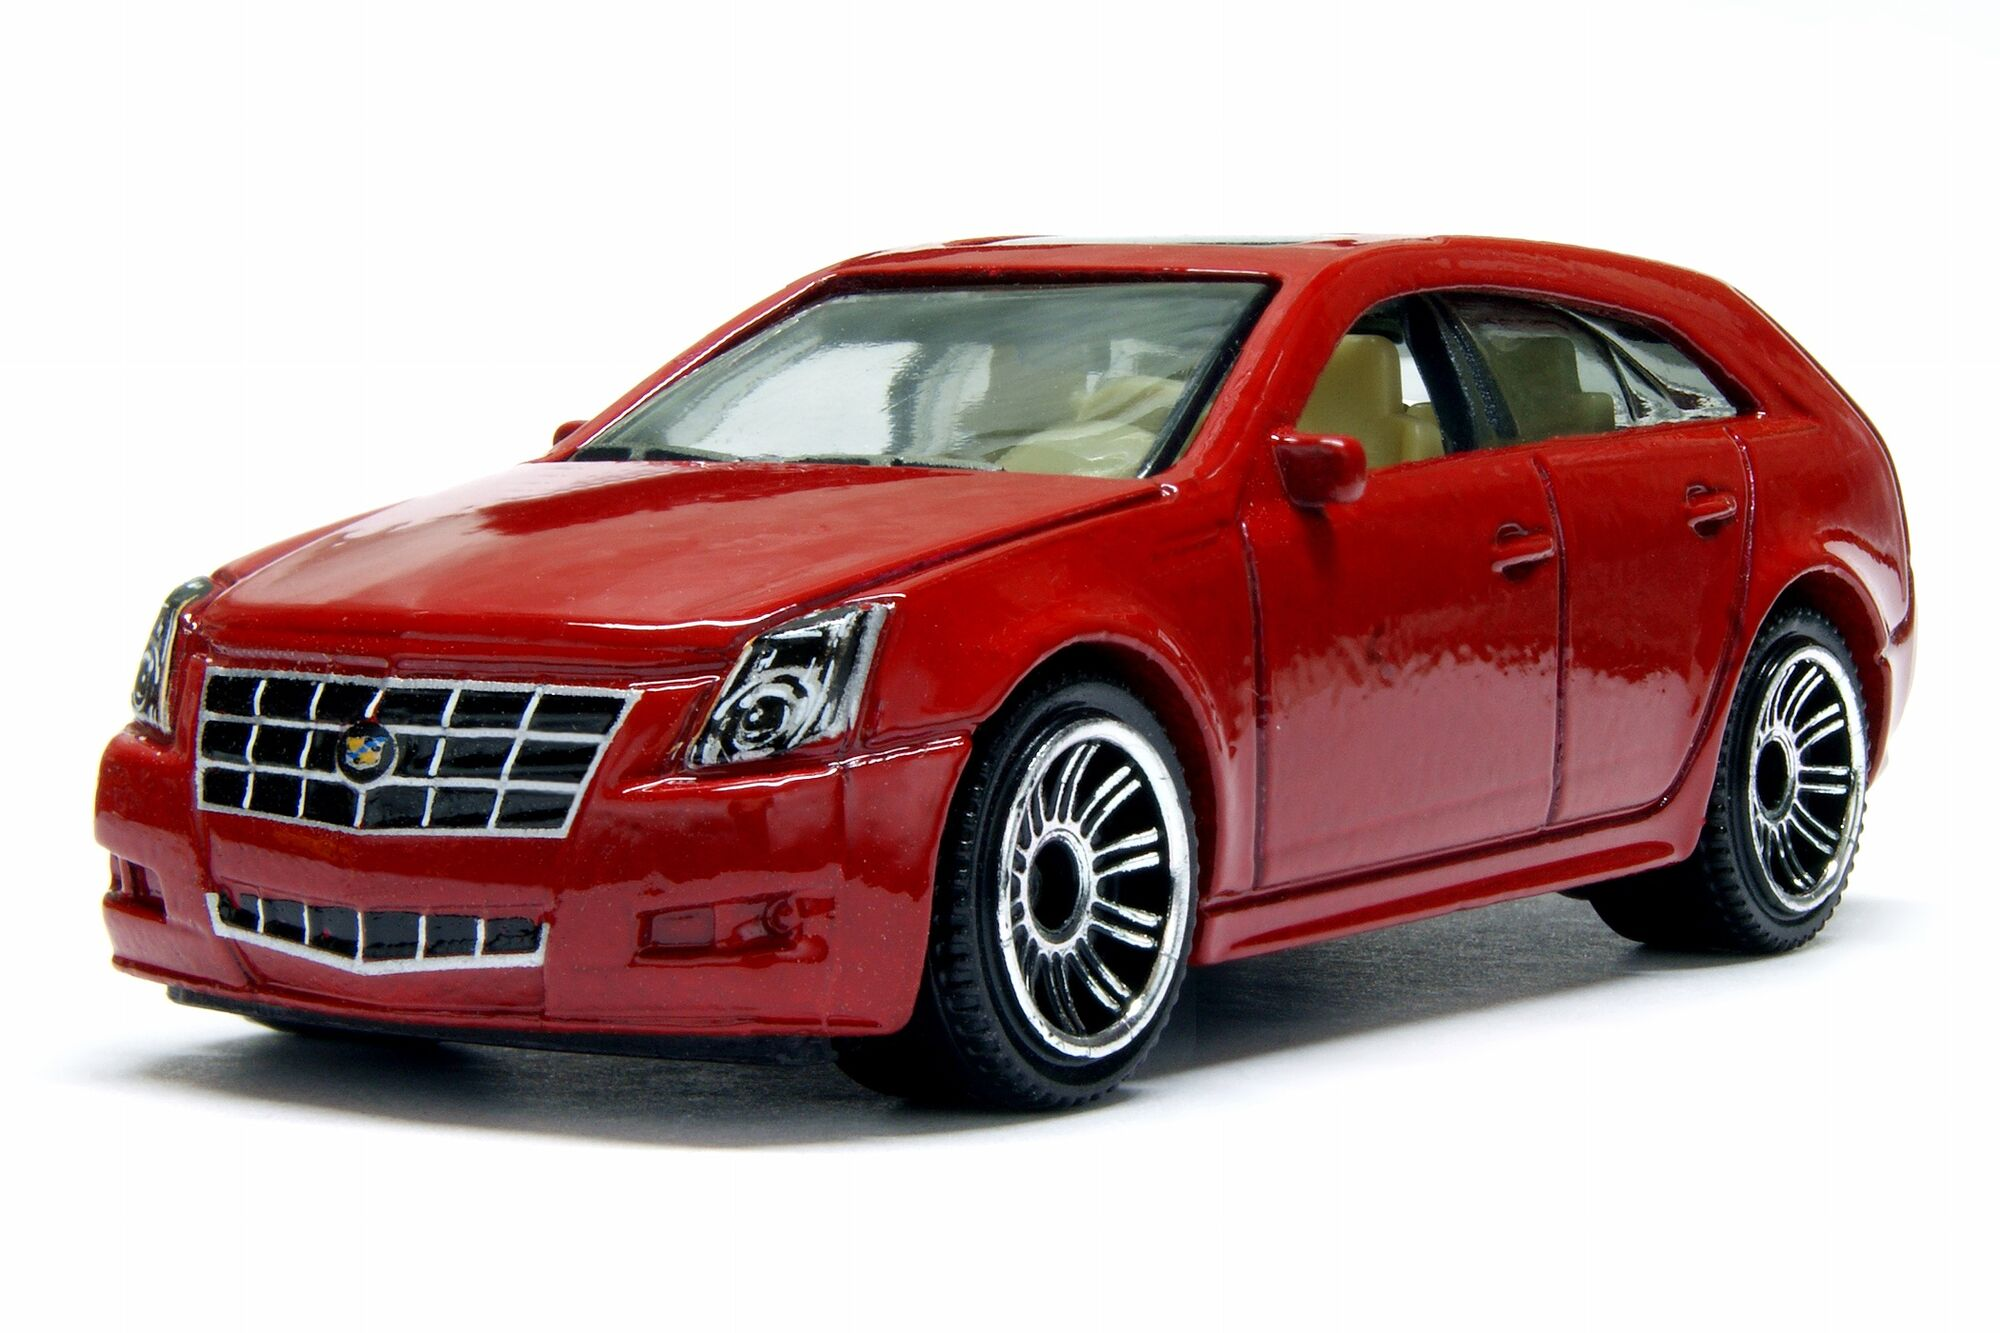 cadillac cts wagon matchbox cars wiki fandom powered by wikia. Black Bedroom Furniture Sets. Home Design Ideas